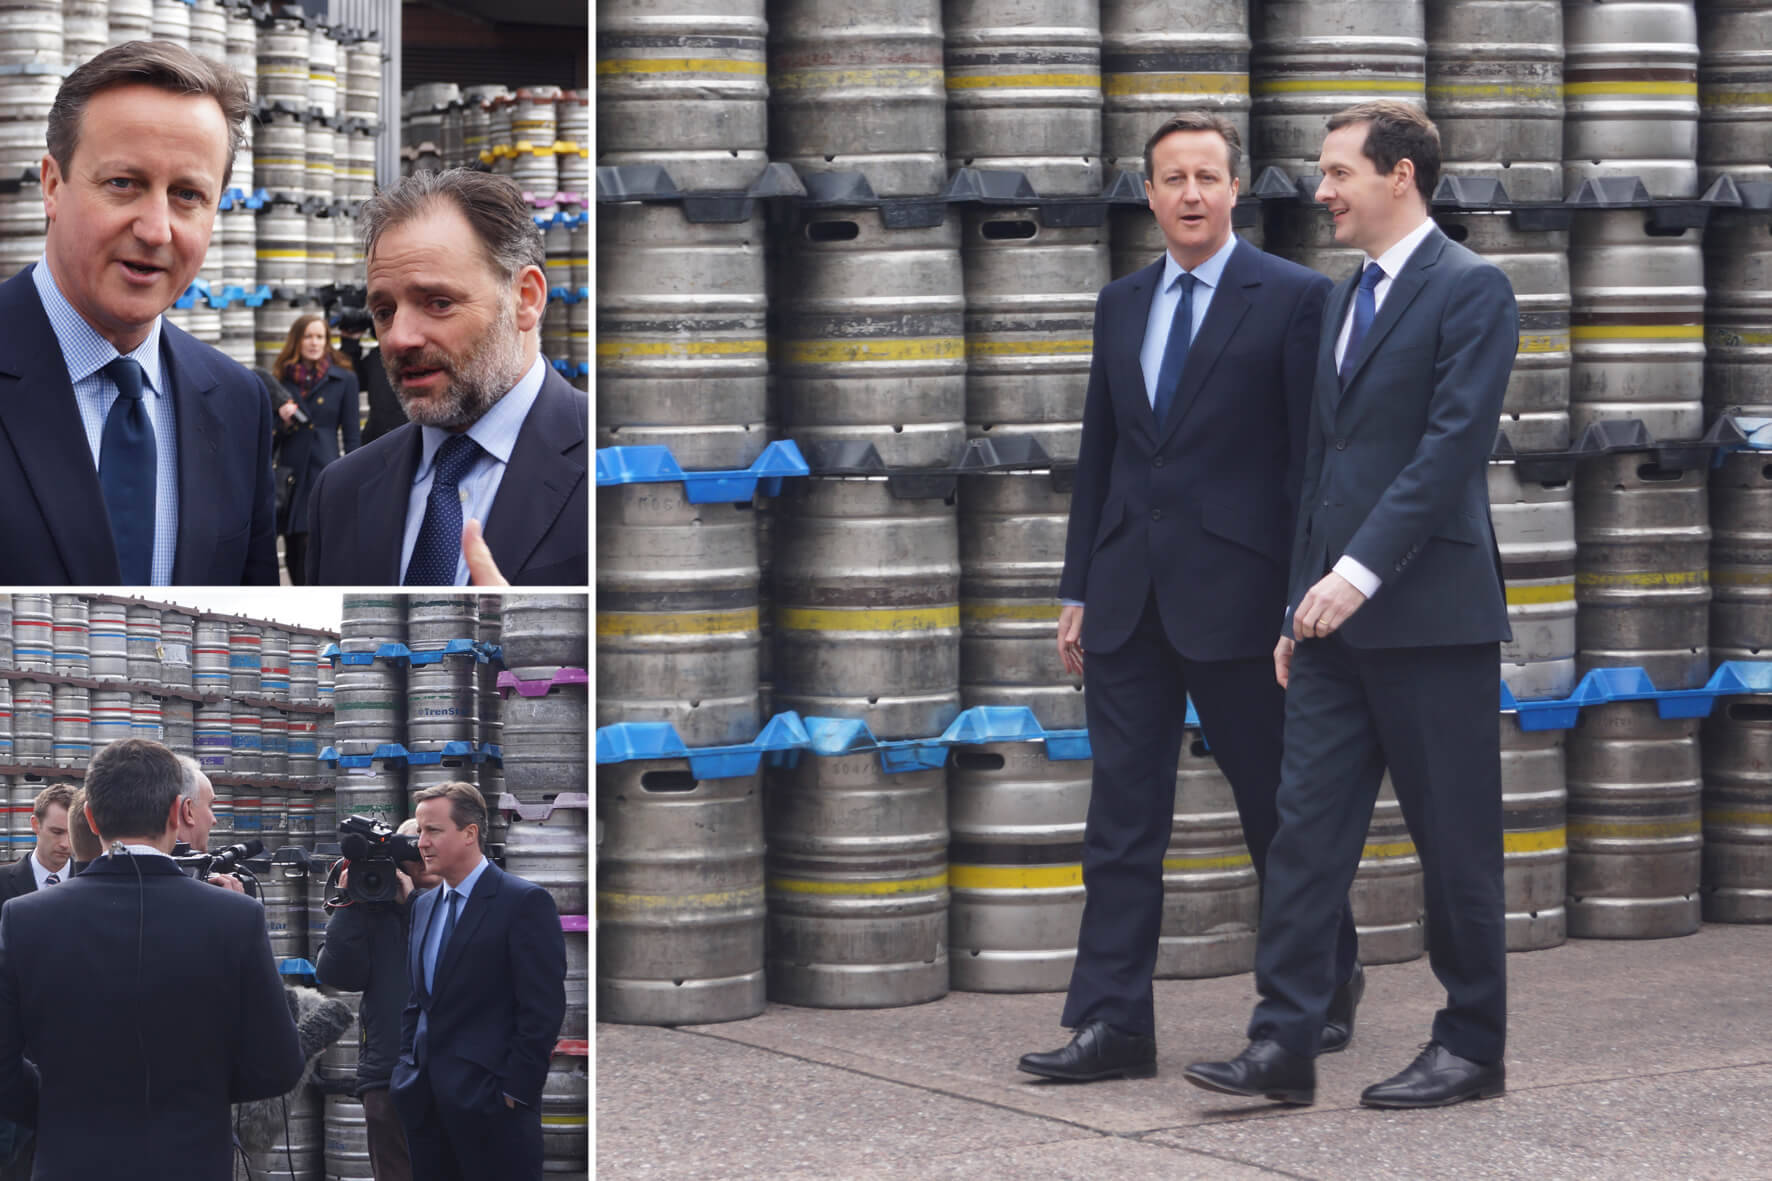 prime minister beer marstons David Cameron Beer Duty